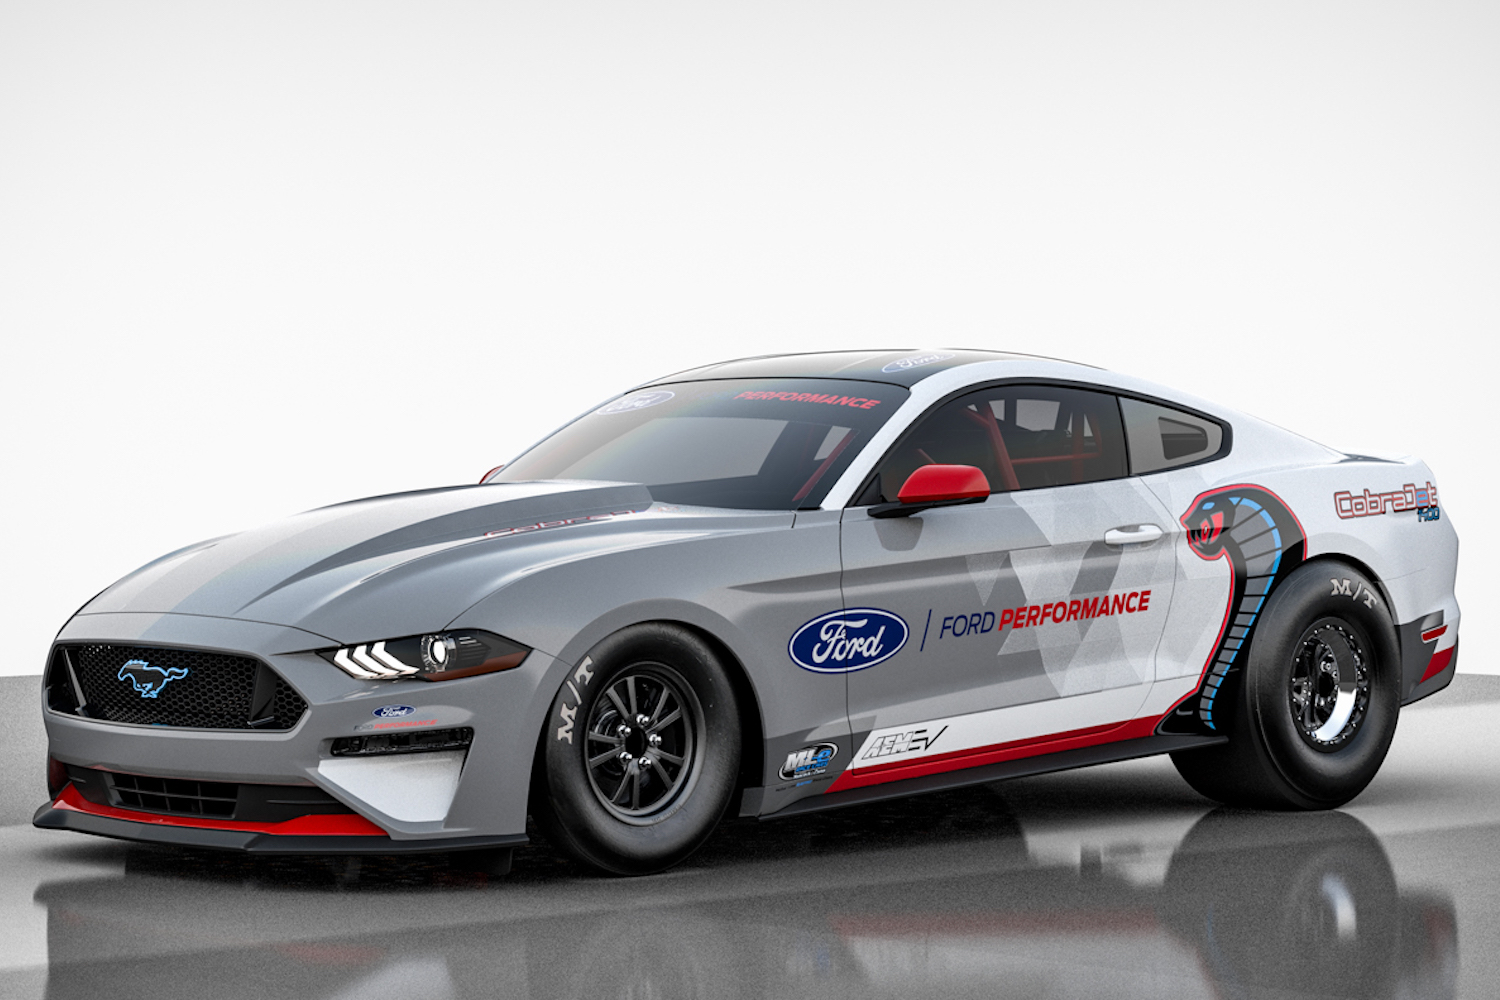 Car News | Ford creates wild 1,400hp electric Mustang | CompleteCar.ie